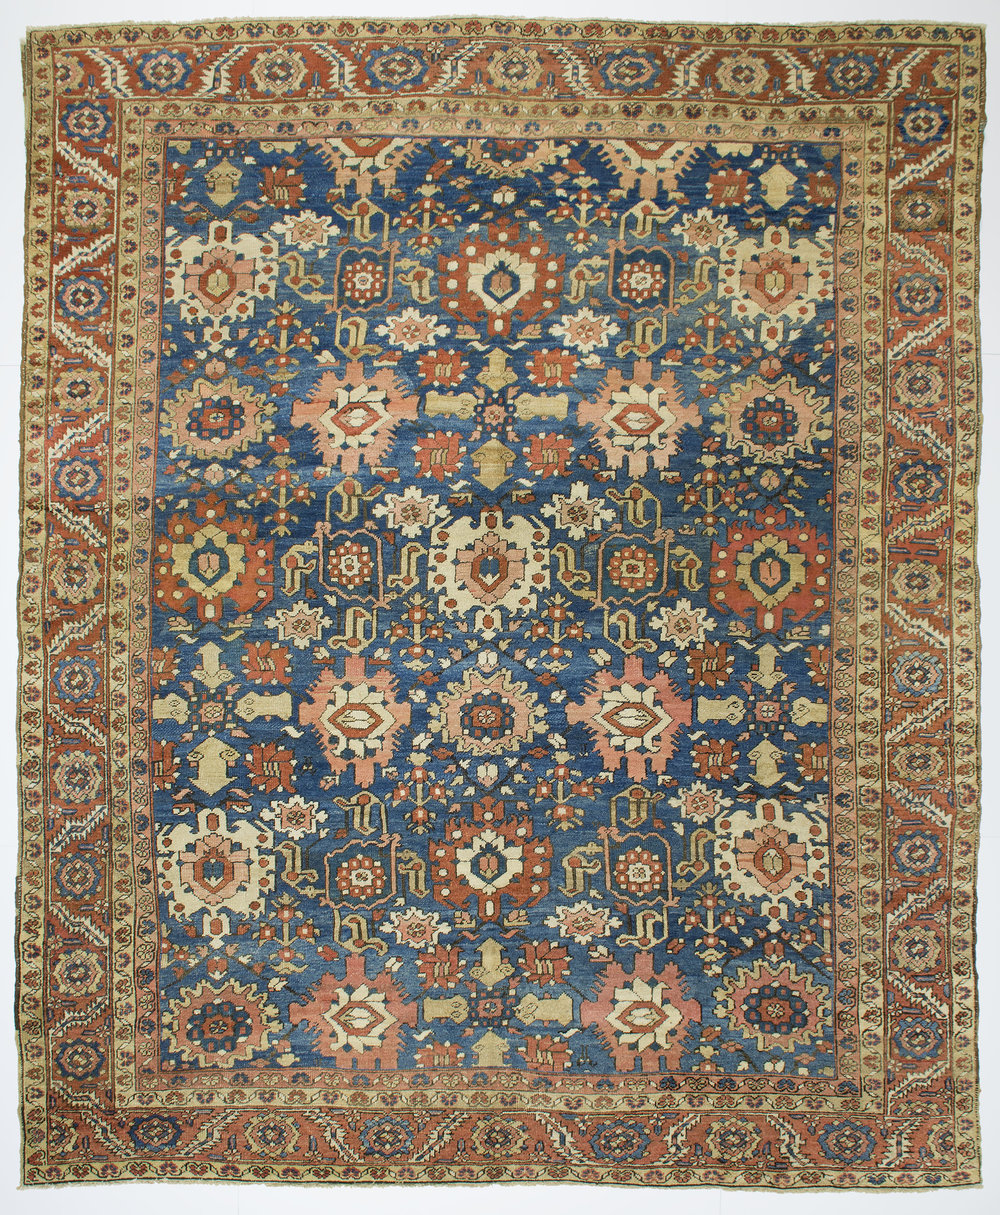 "Heriz Carpet 11' 10"" x 9' 10"""